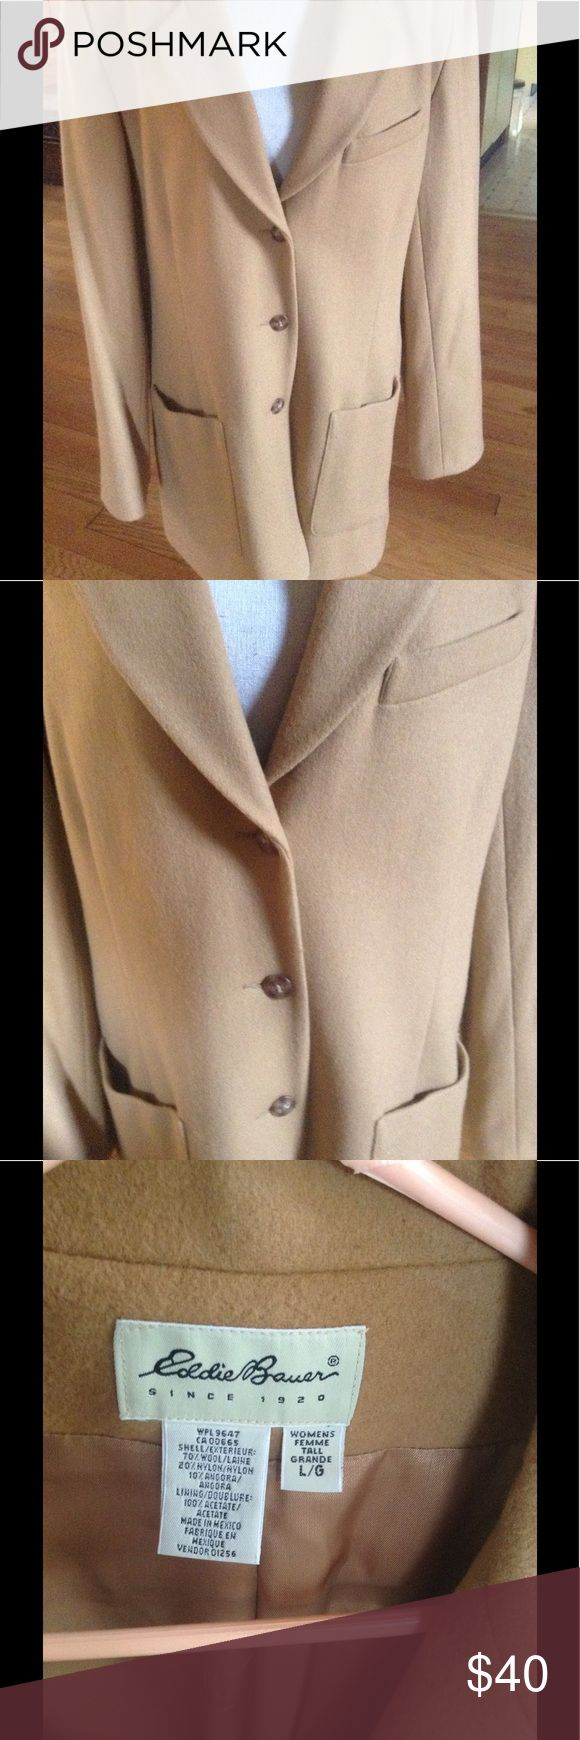 🌻EDDIE BAUER WOOL ANGORA BLEND LINED LADIES COAT Eddie Bauer wool angora blend fully lined button down coat. Size is LADIES LARGE. Beautiful camel color, buttons down, two front pockets. Classic addition to your wardrobe. From a smoke and pet free home. Thank you for looking!🌻🍁🌻🍁 Eddie Bauer Jackets & Coats Pea Coats